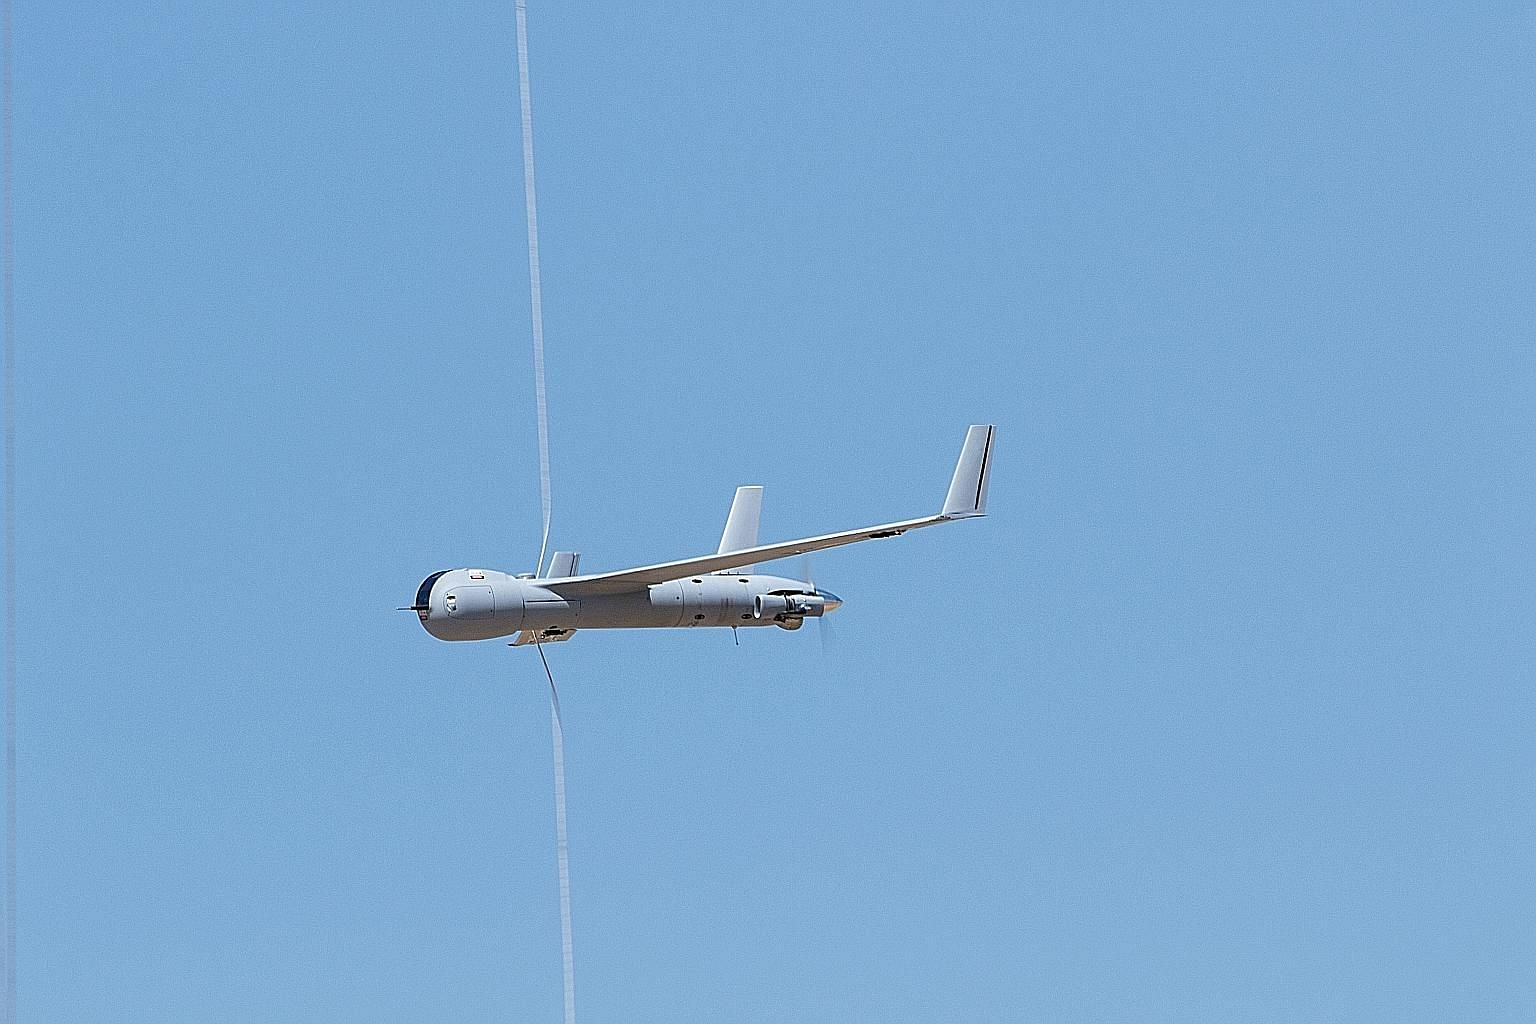 The Pentagon had announced last Friday that it would sell 34 Boeing-made ScanEagle drones to the governments of Malaysia, Indonesia, the Philippines and Vietnam for a total of US$47 million (S$64 million).